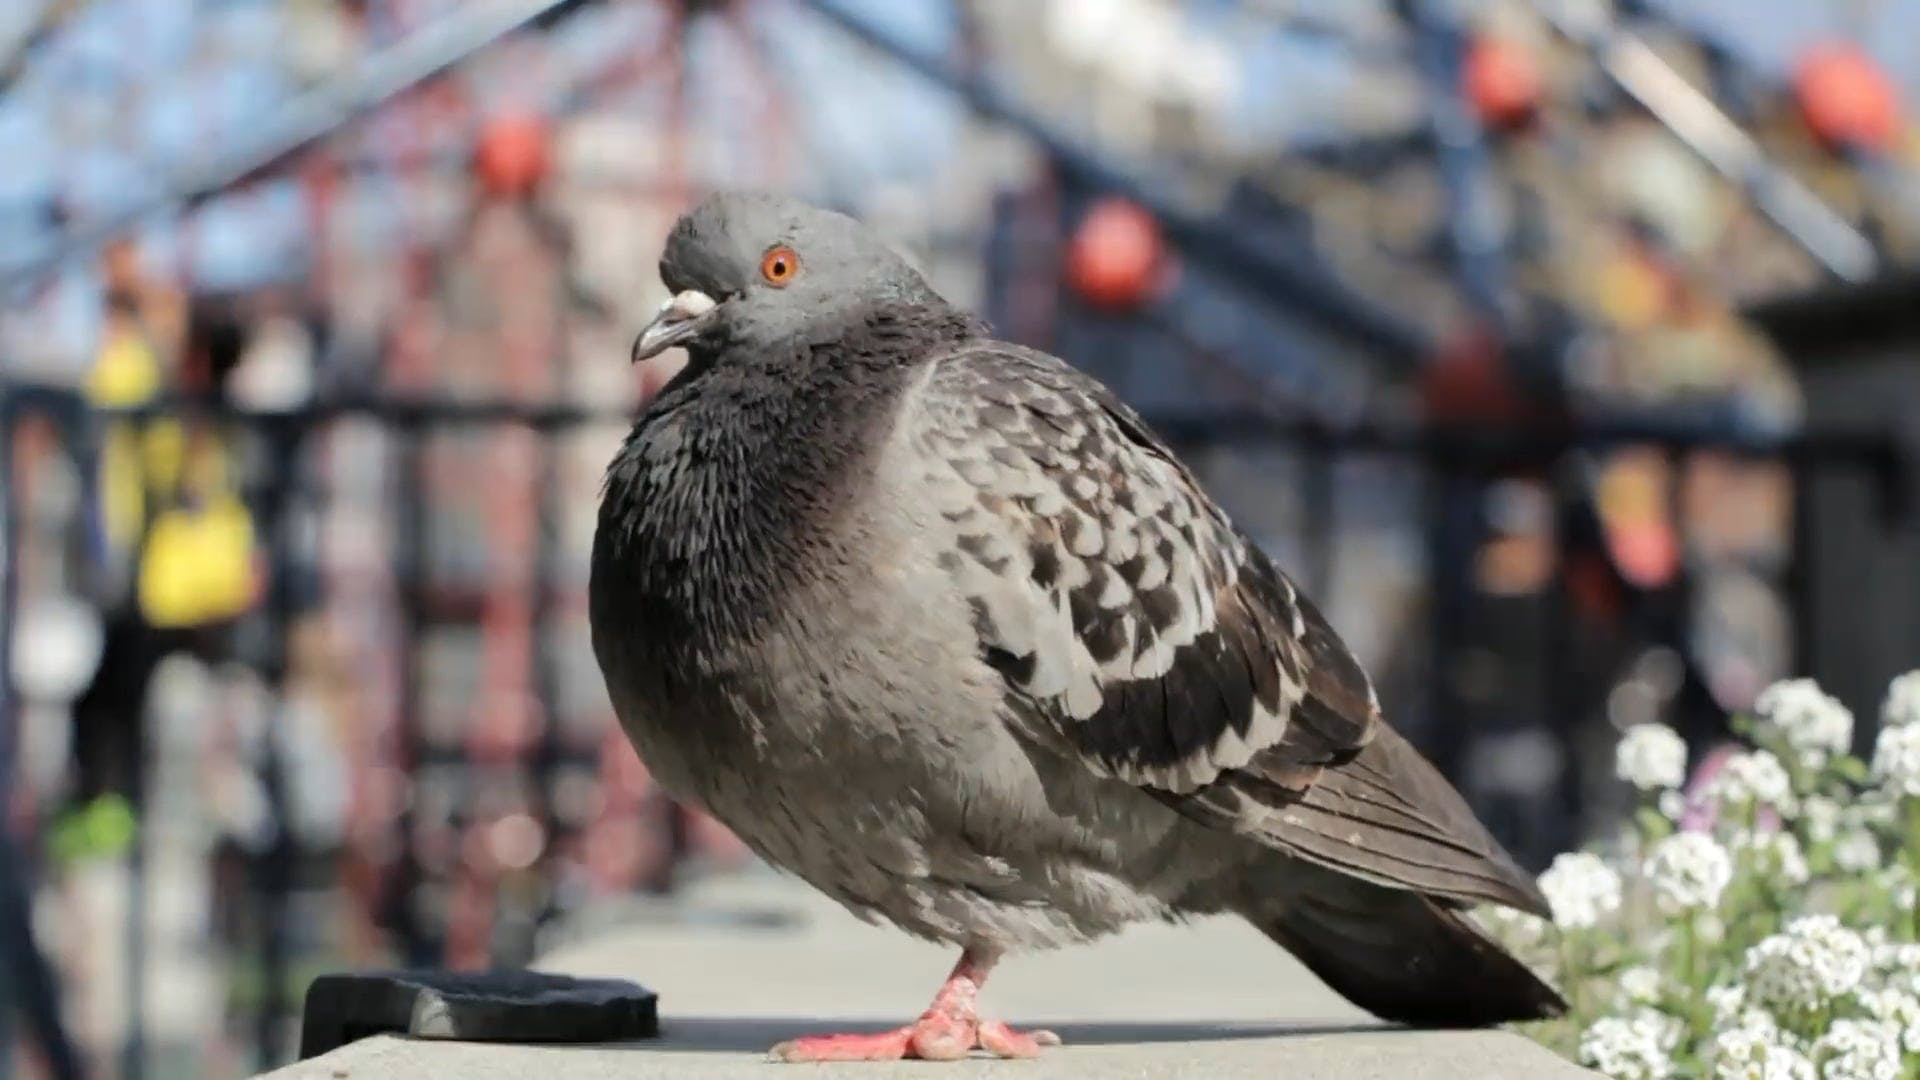 Video Of A Pigeon